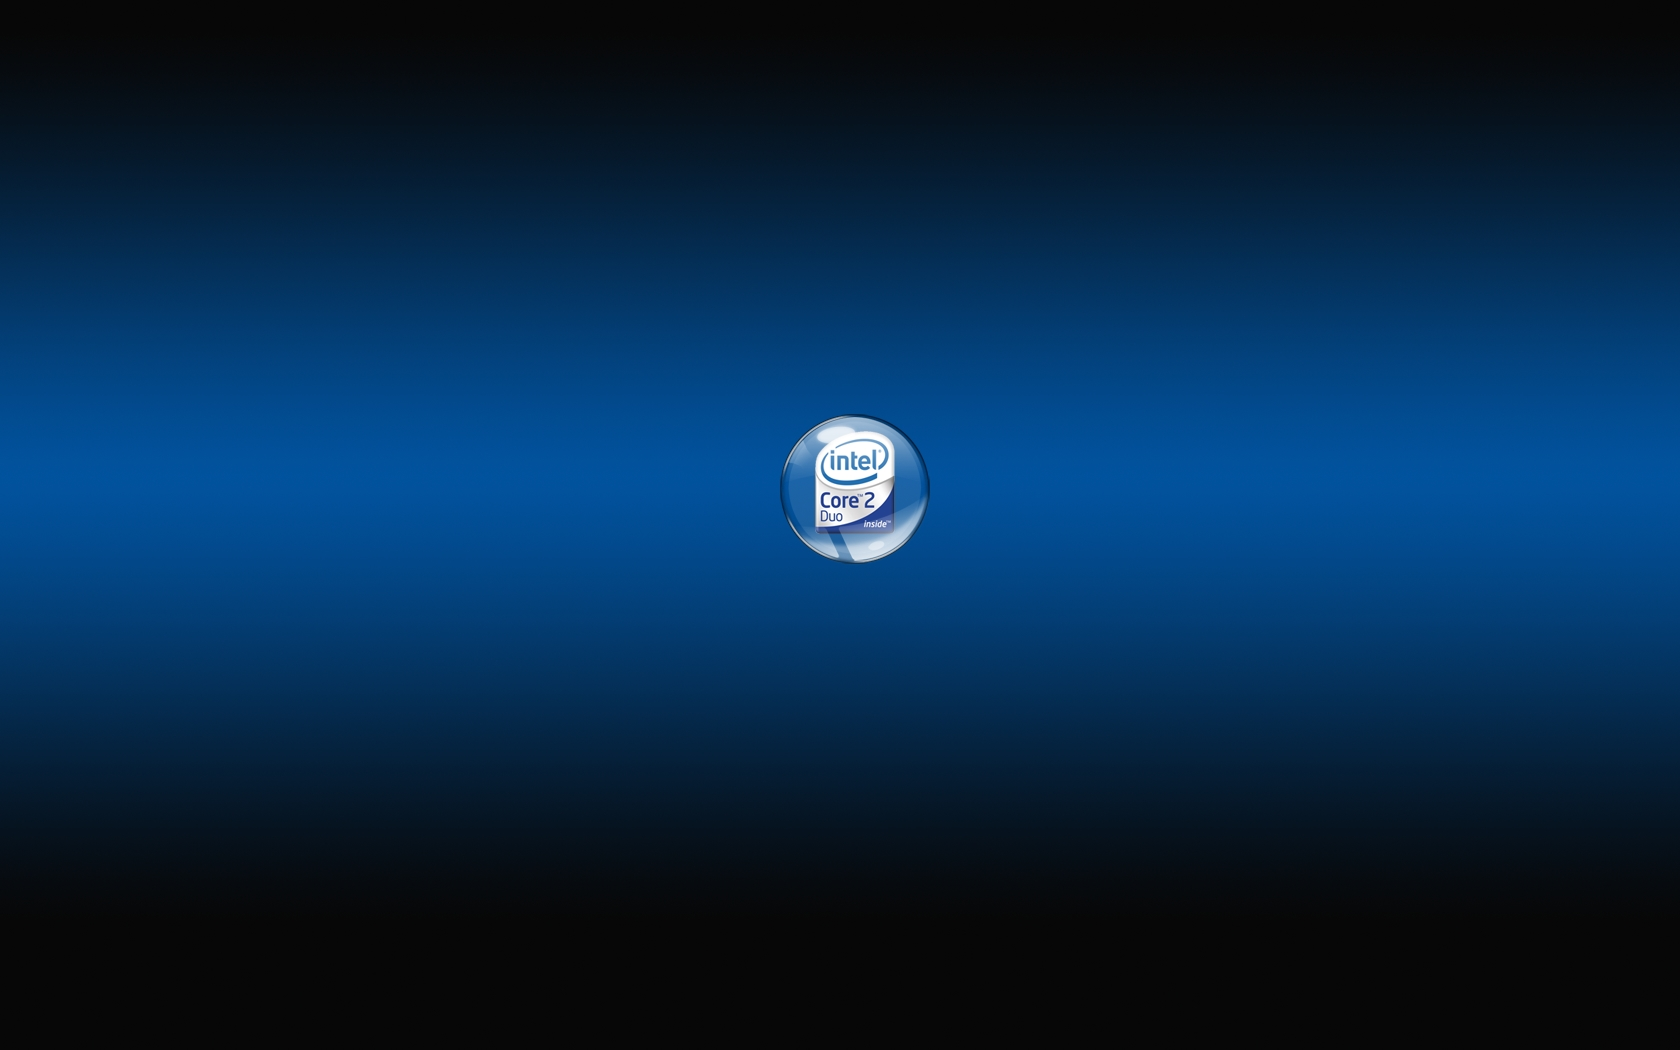 Intel Core 2 Logo wallpapers Intel Core 2 Logo stock photos 1680x1050